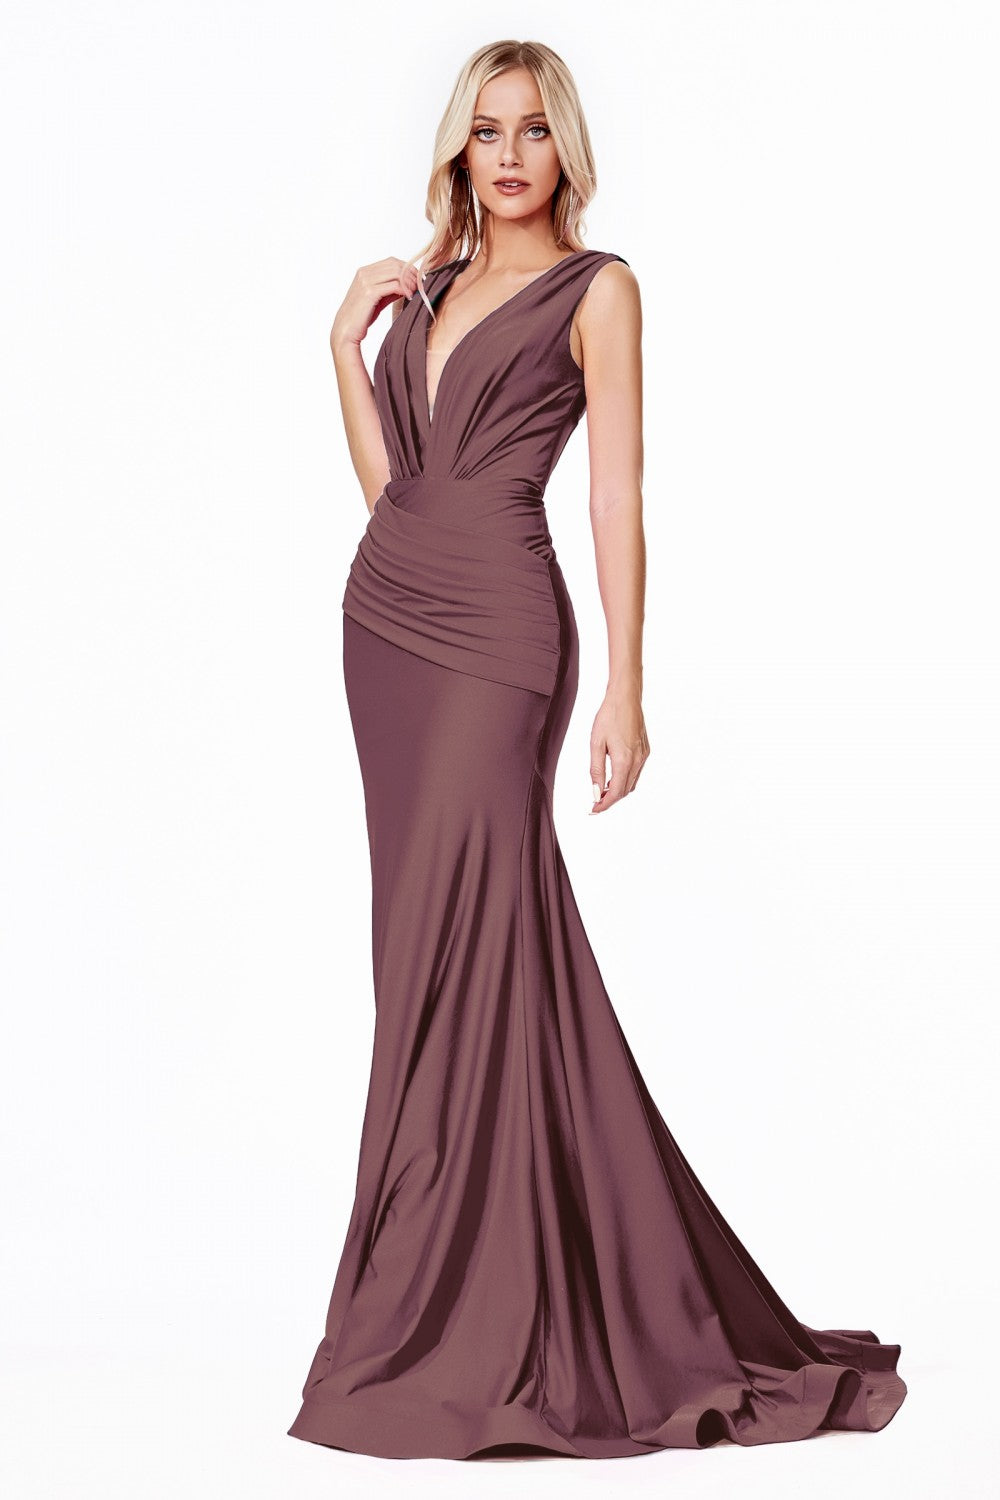 Denise Bridesmaid Dress in Deep Mauve Sleeveless Gown with Train C912WR-Deep Mauve SAMPLE IN STORE